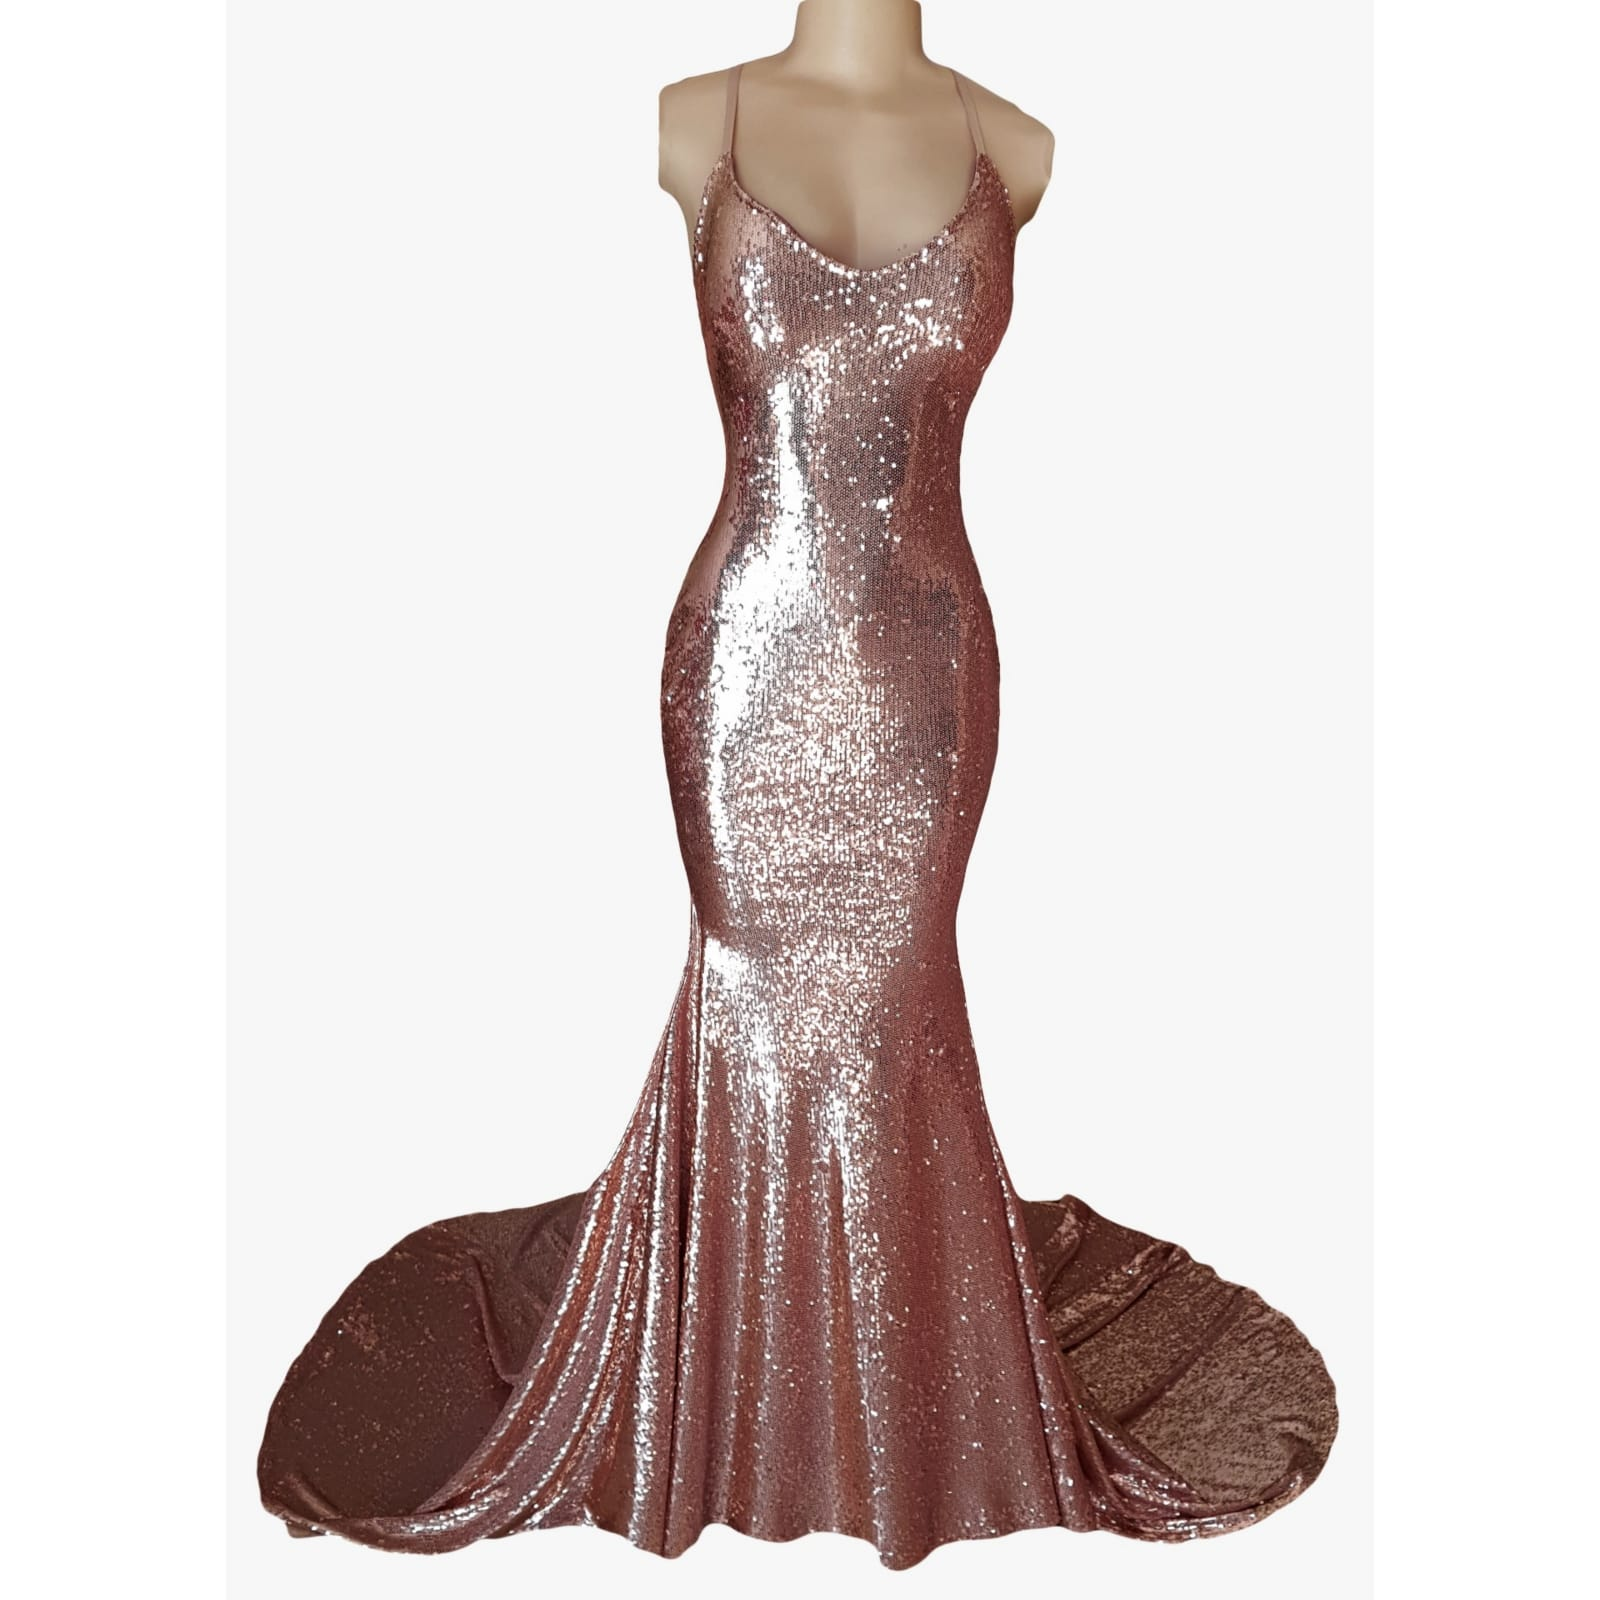 Rose gold fully sequined soft mermaid evening dress 4 rose gold fully sequined soft mermaid evening dress with a low open back, with lace-up detail.